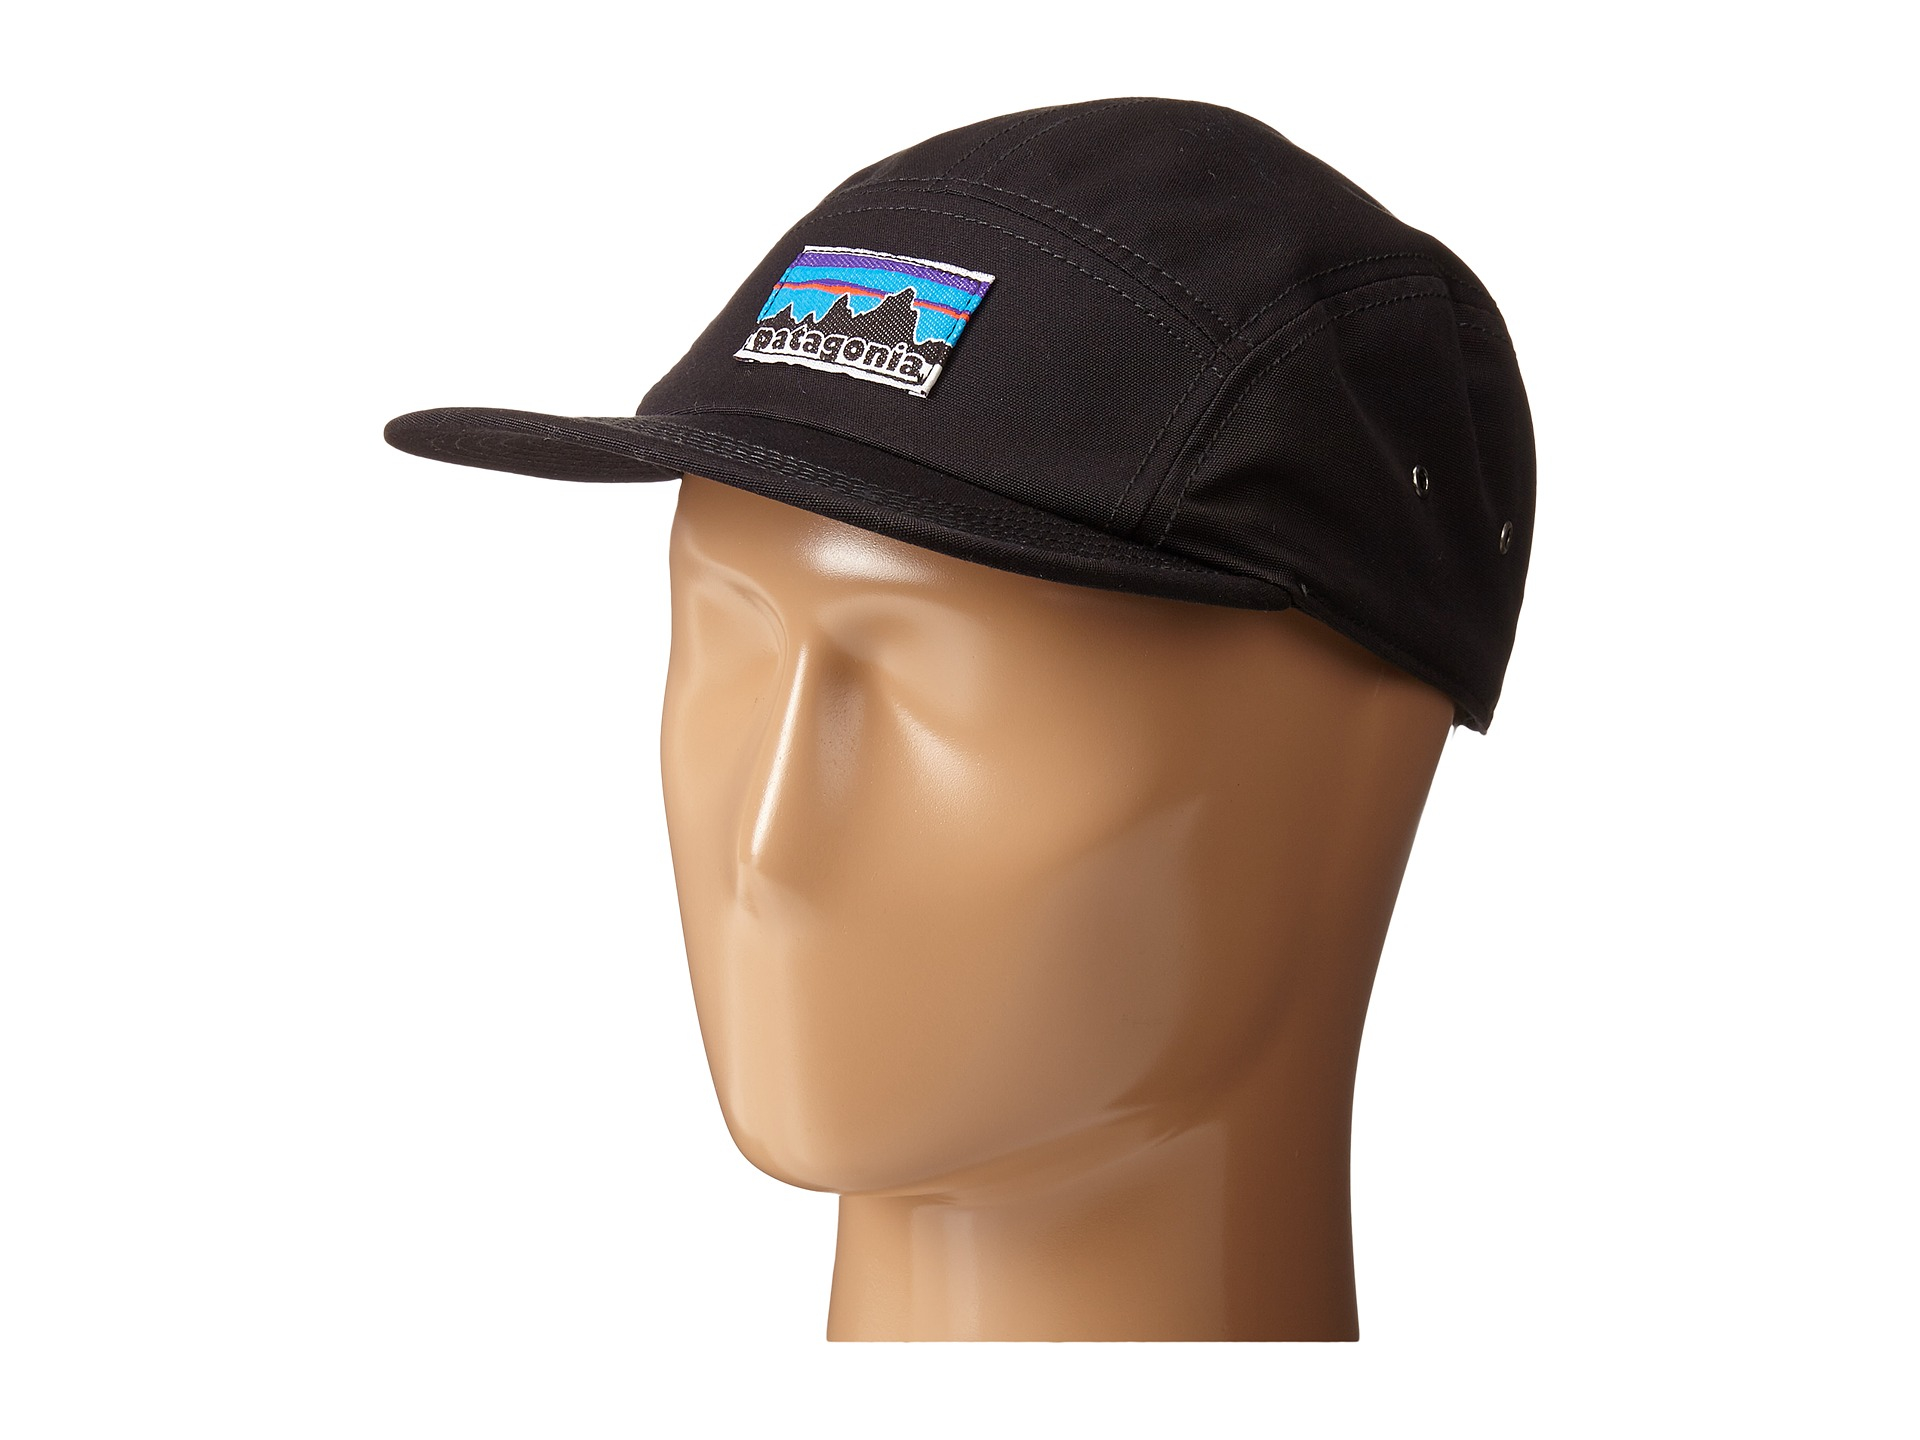 bfdcc11f Patagonia Retro Fitz Roy Label Tradesmith Cap in Black - Lyst